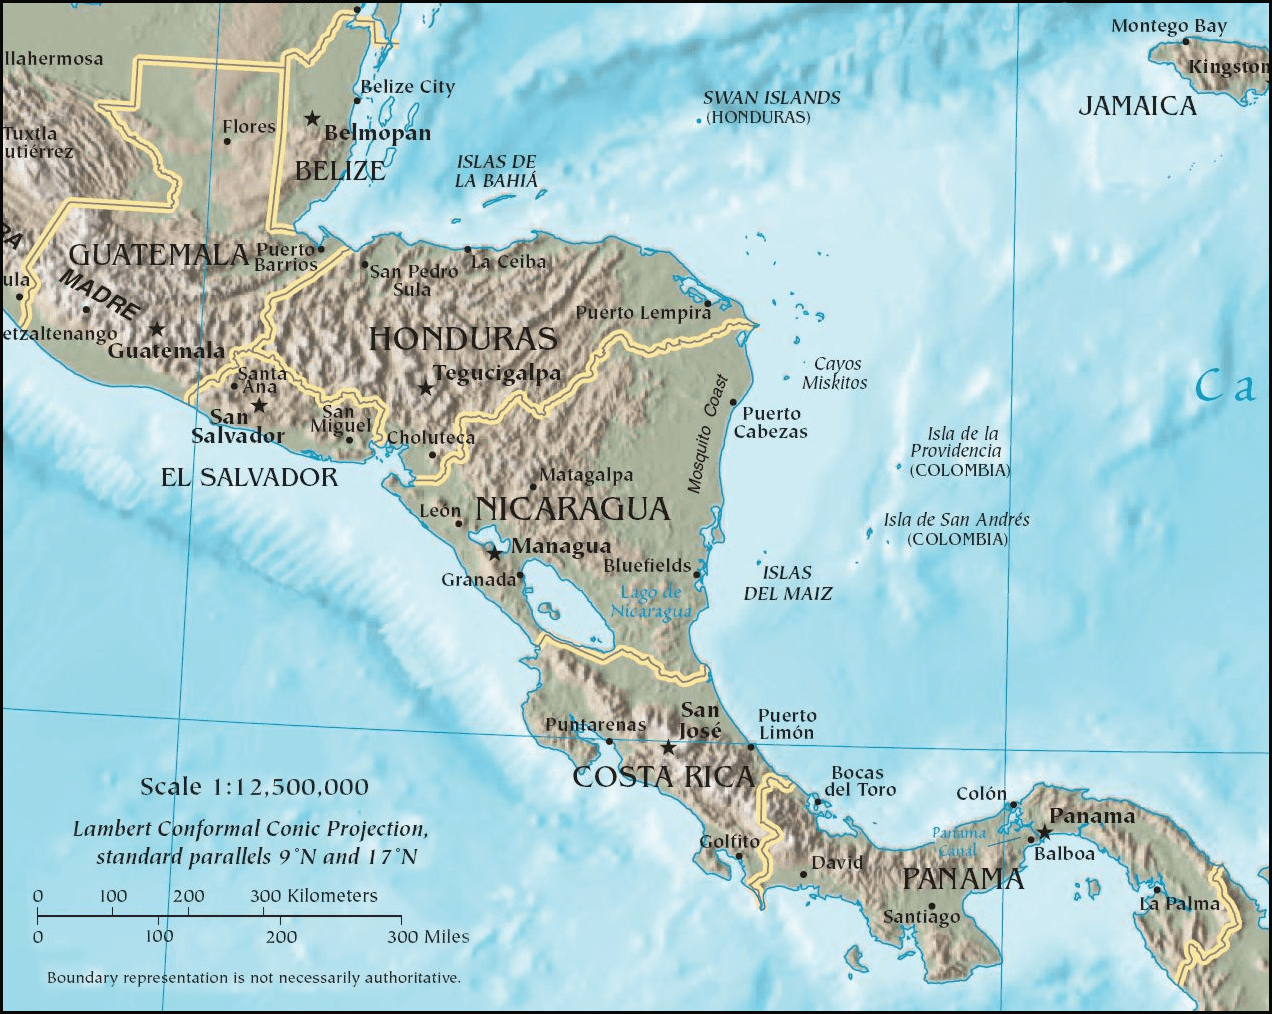 https://i2.wp.com/upload.wikimedia.org/wikipedia/commons/9/94/CIA_map_of_Central_America.png